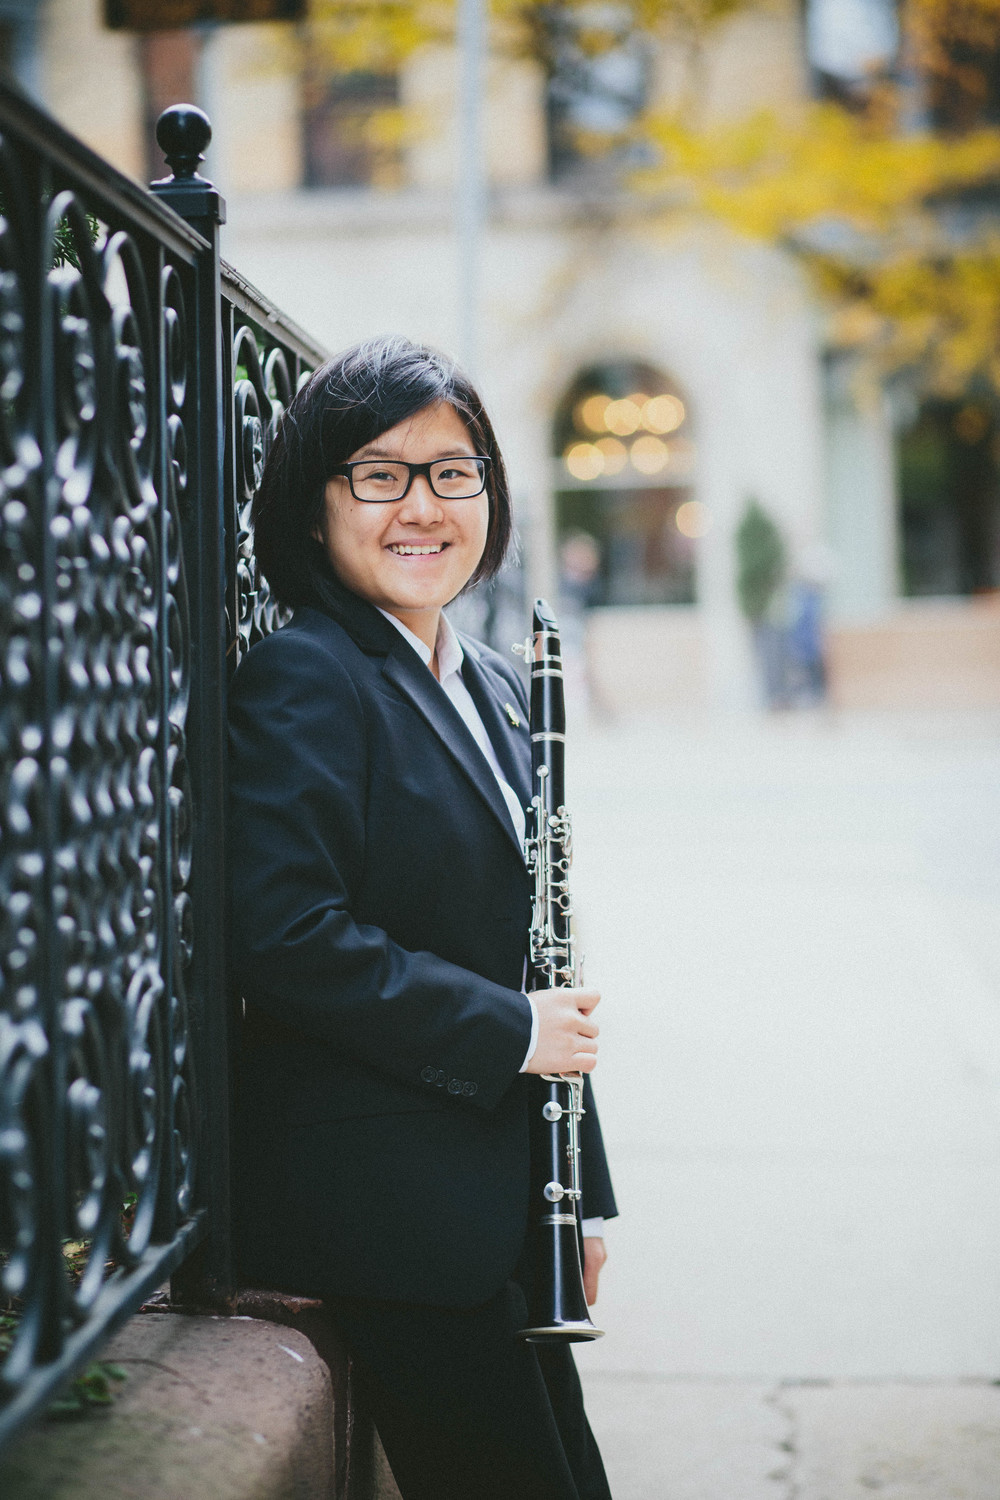 Tiffany -  professional musician, Boston, MA